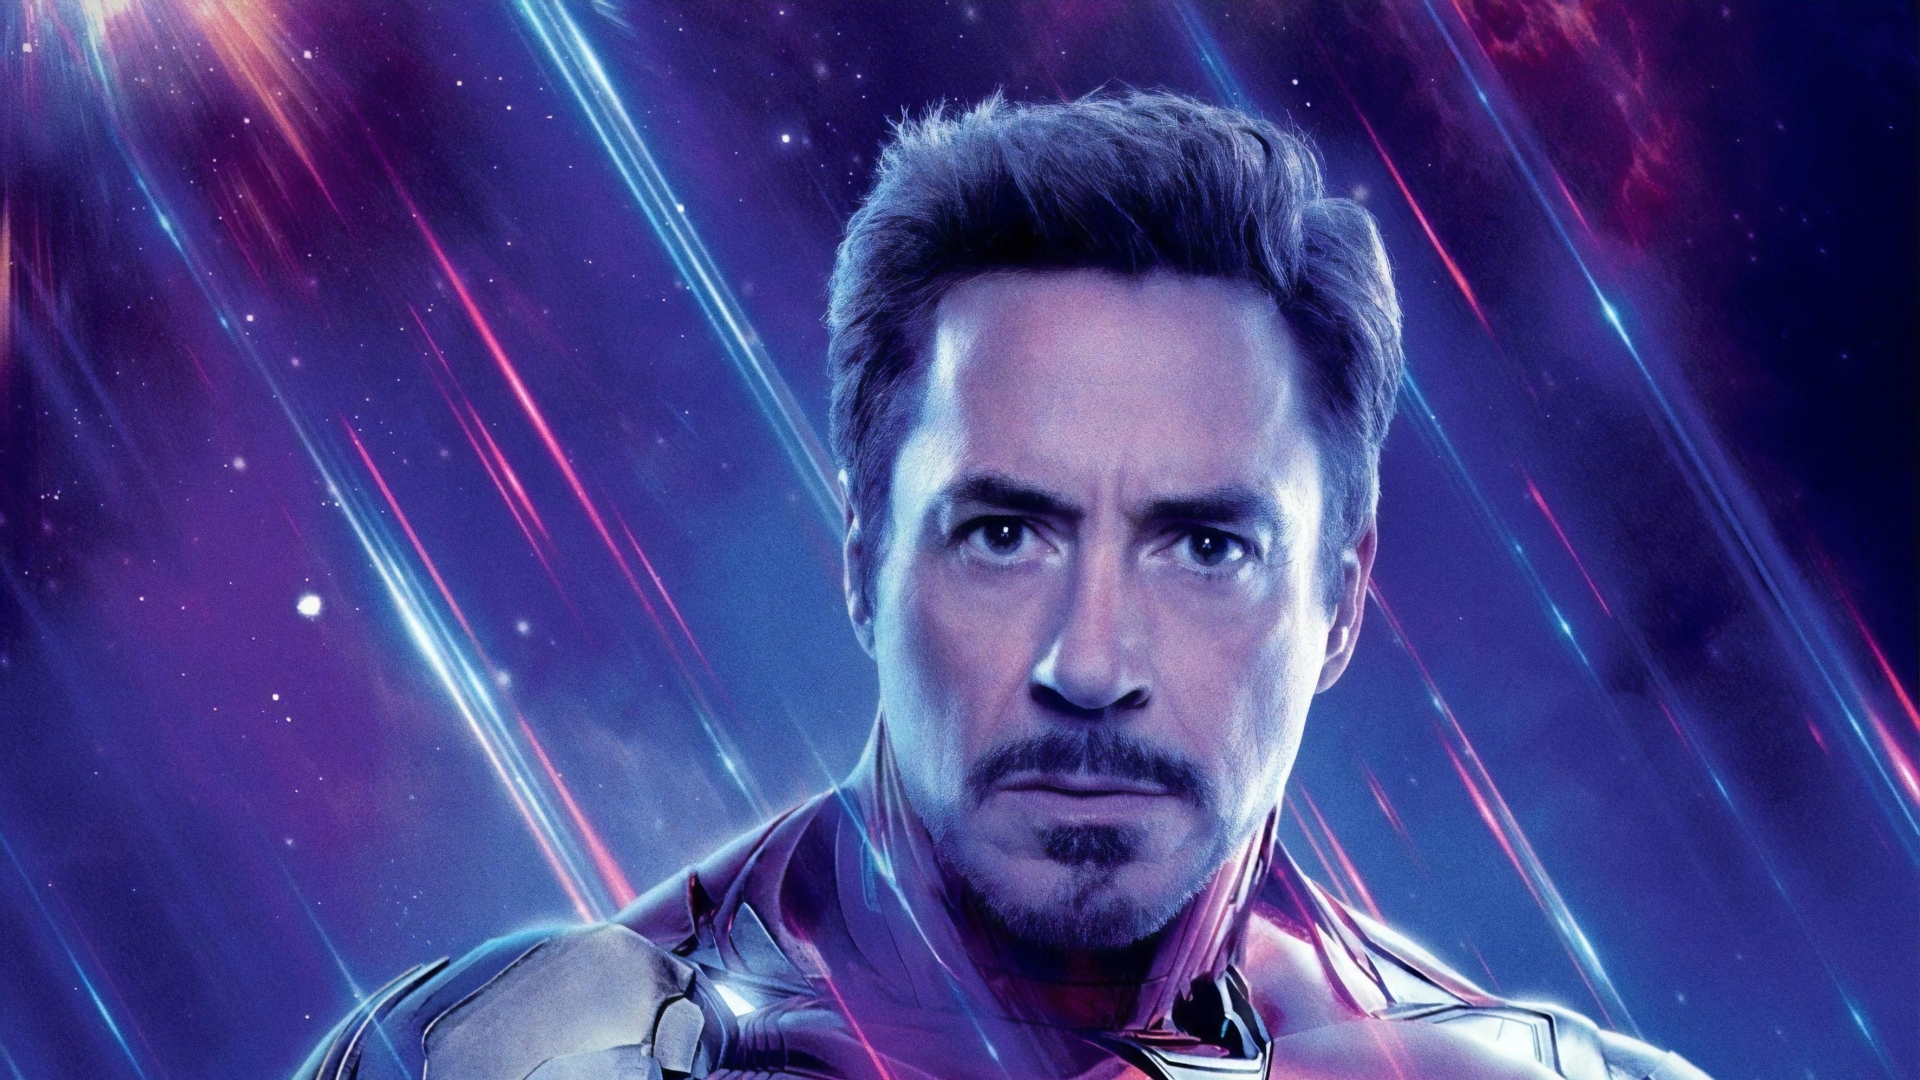 1920x1080 Iron Man In Avengers Endgame 1080p Laptop Full Hd Wallpaper Hd Movies 4k Wallpapers Images Photos And Background